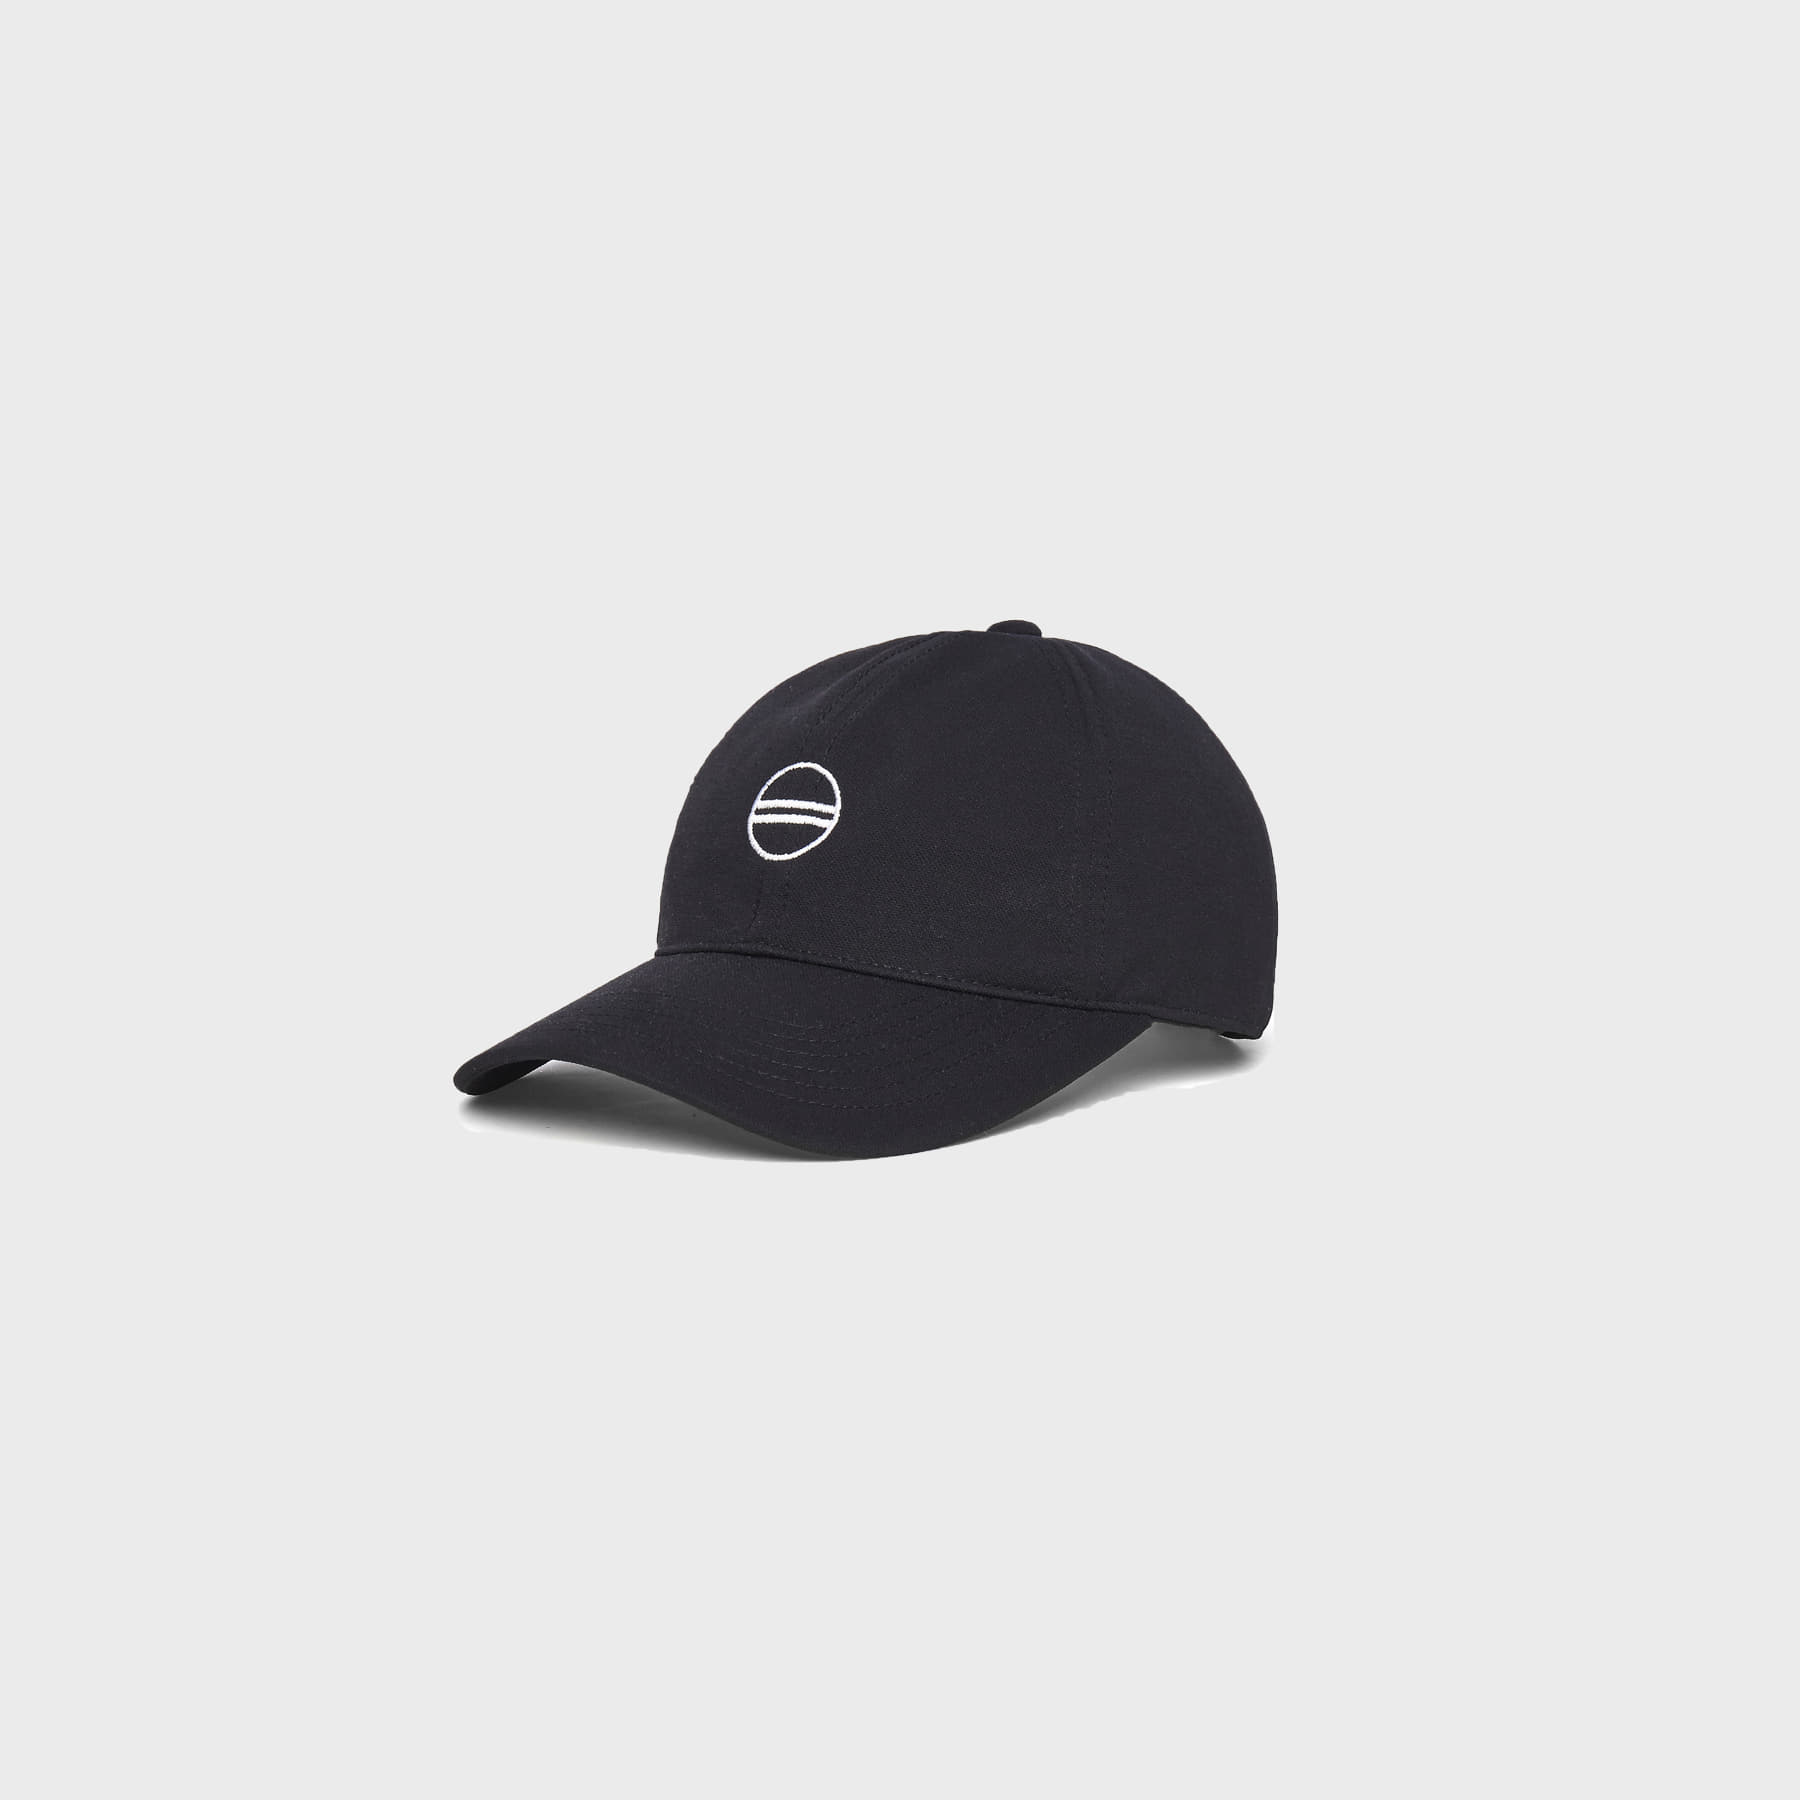 corn ballcap  (black)